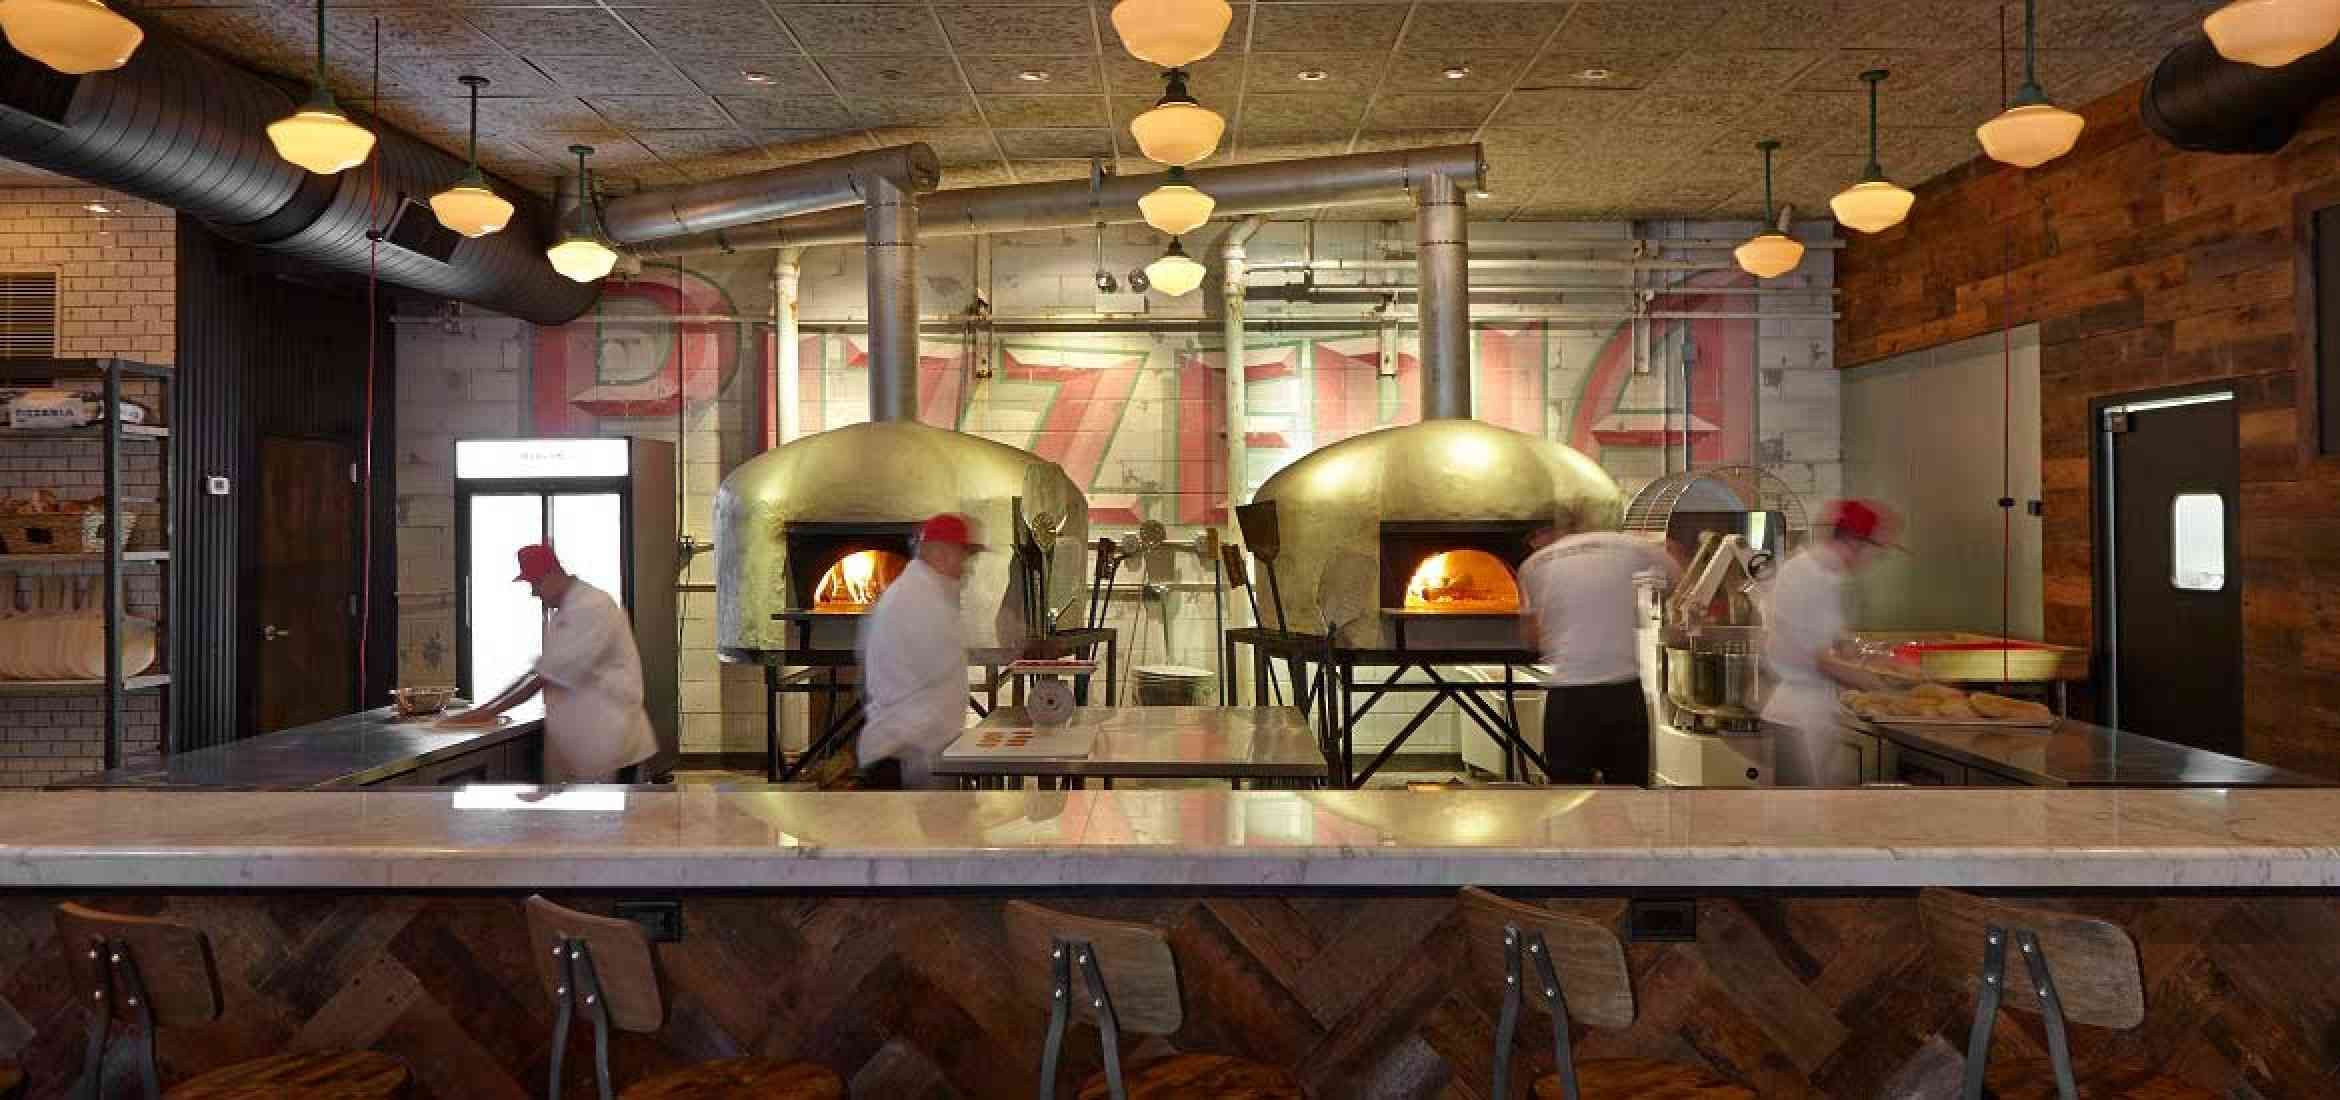 La Cucina Pizza Berwick Wood Fired Grill And Oven Beer Halls Google Search Wood Fired